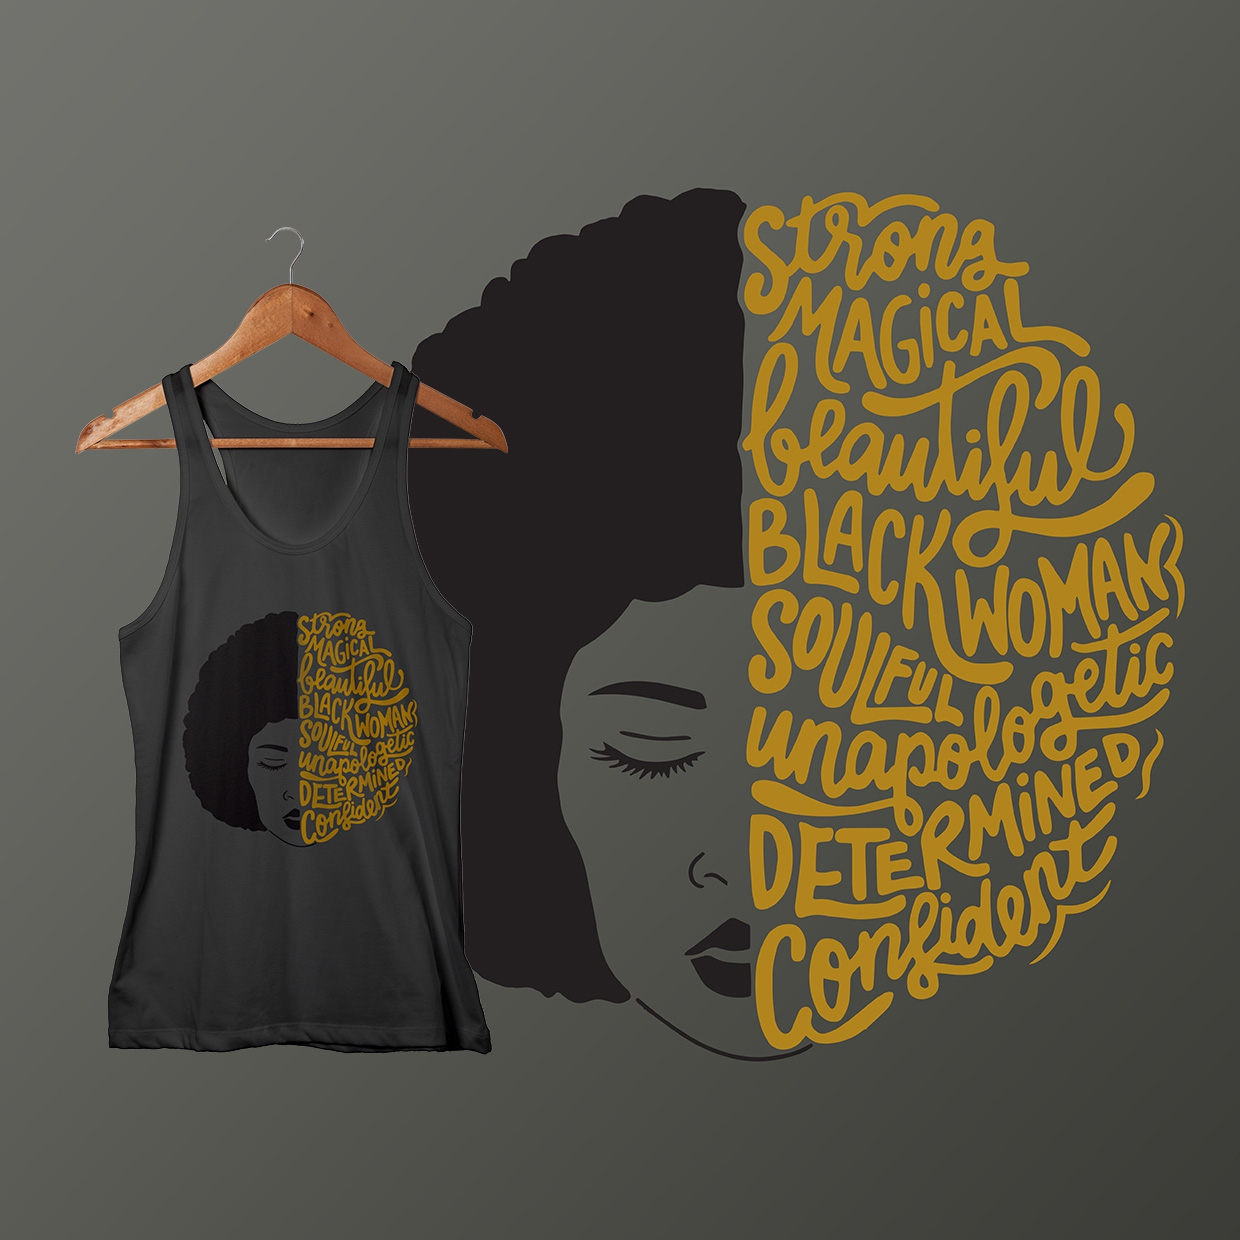 Graphic T-shirt Designs for Women